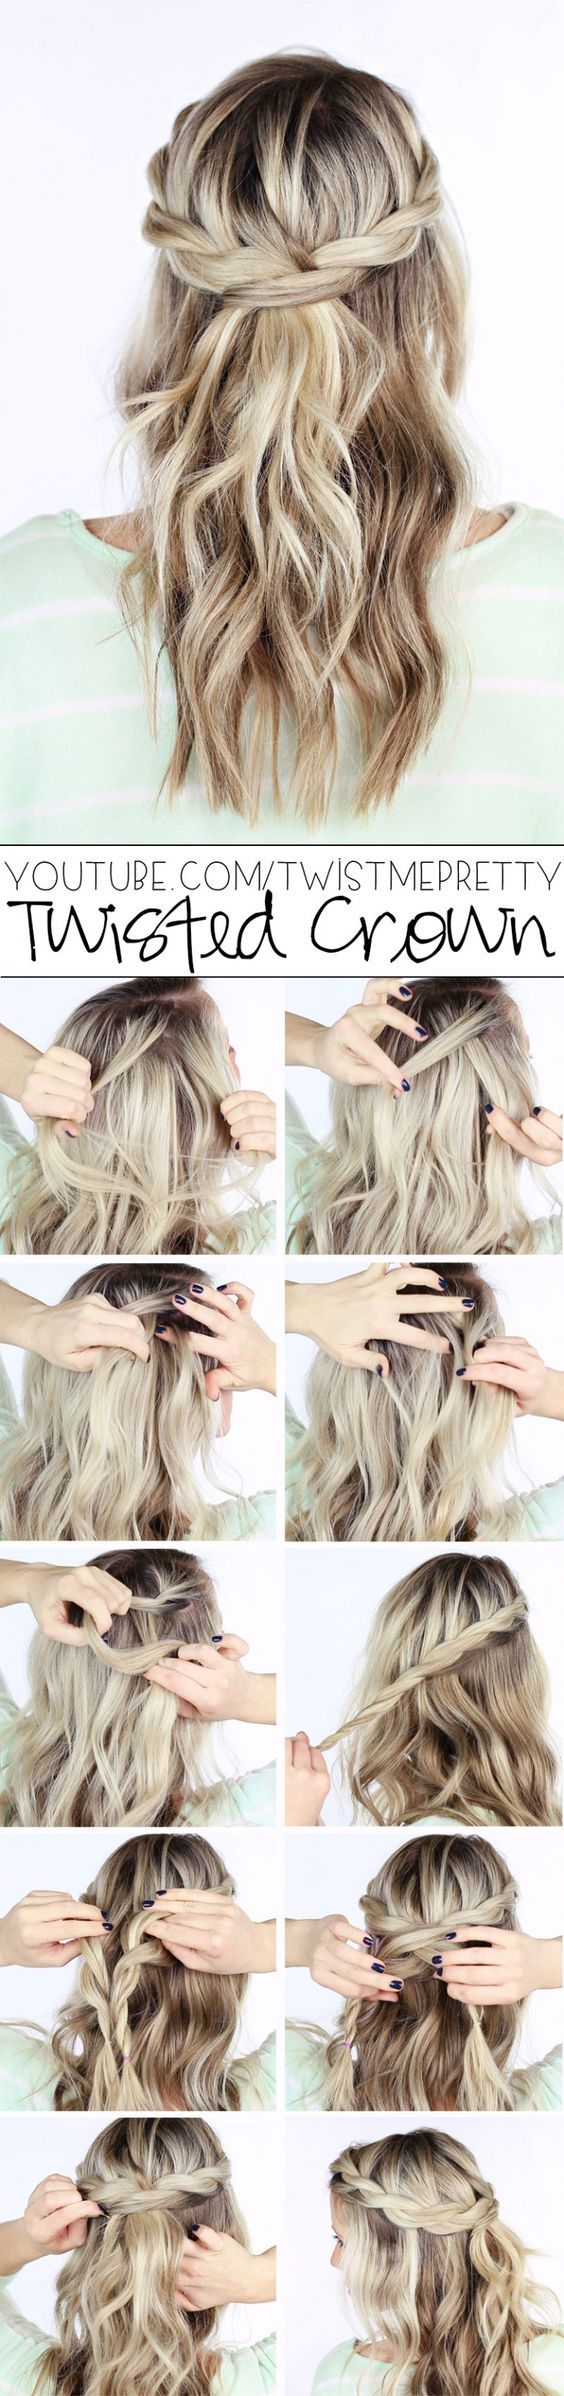 10 Easy And Cute Hair Tutorials For Any Occassion. These hairstyles are great for any occasion whether you just want quick and casual or simple yet elegant. Great for women with medium to long hair. Want no heat waves, a messy sock bun, or stylish braids? Look no further.: